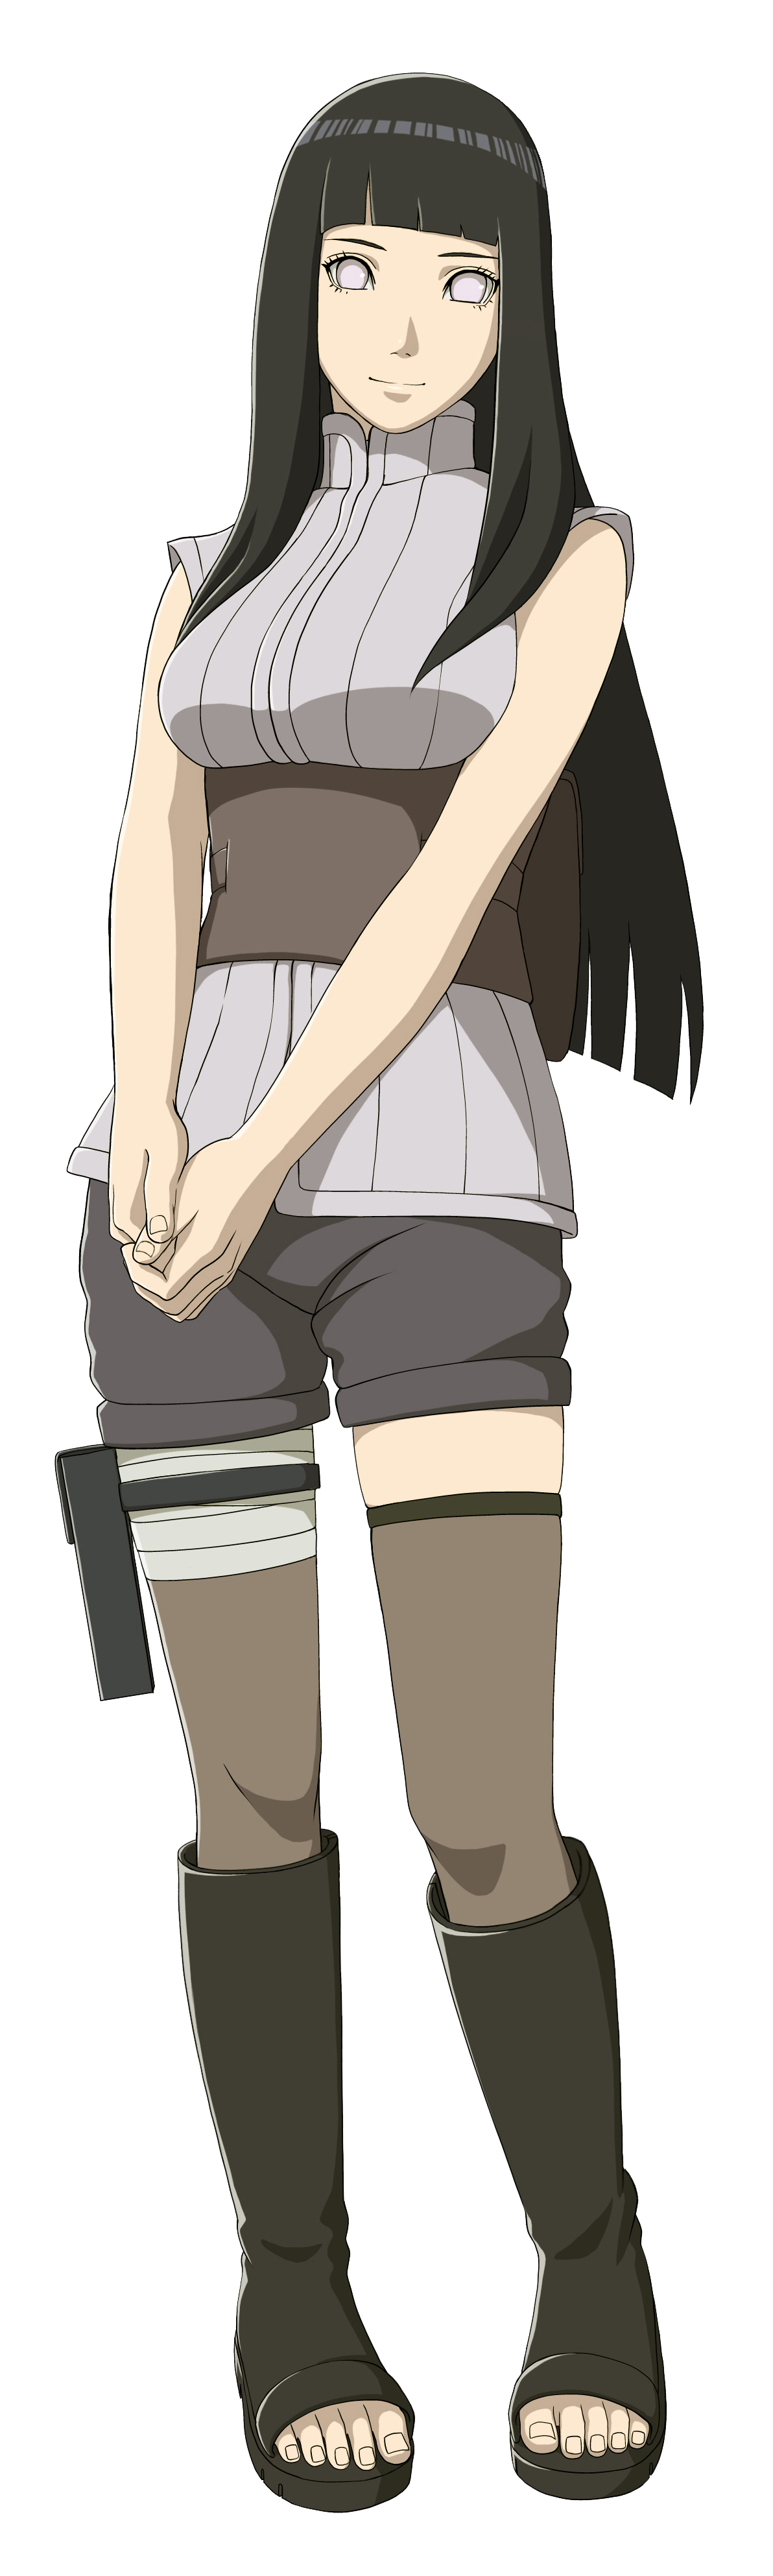 Hinata transparent the last. I will never understand